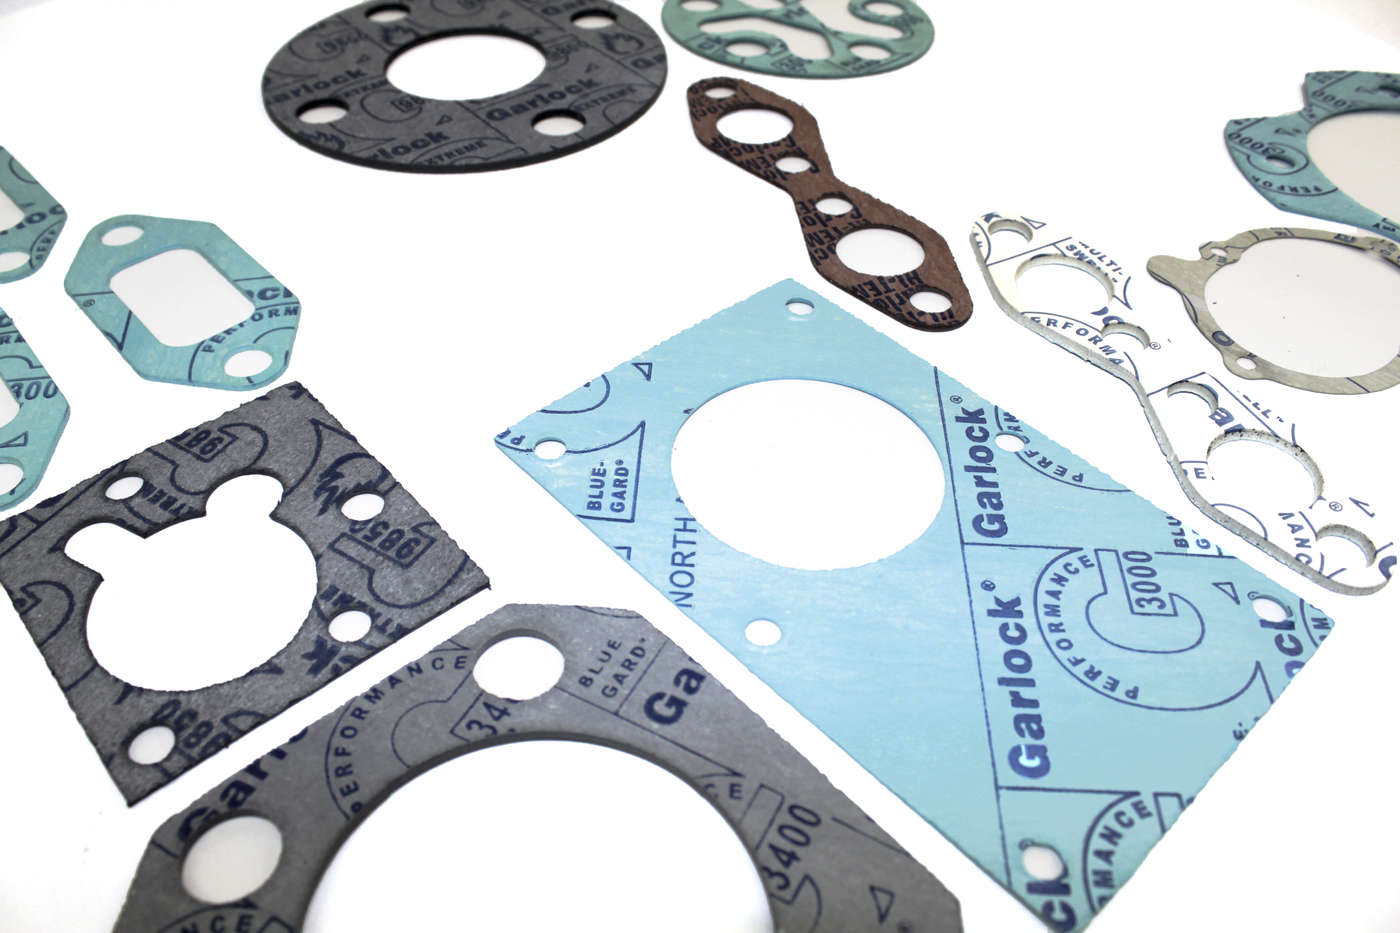 Garlock Bluegard 3300 Gaskets